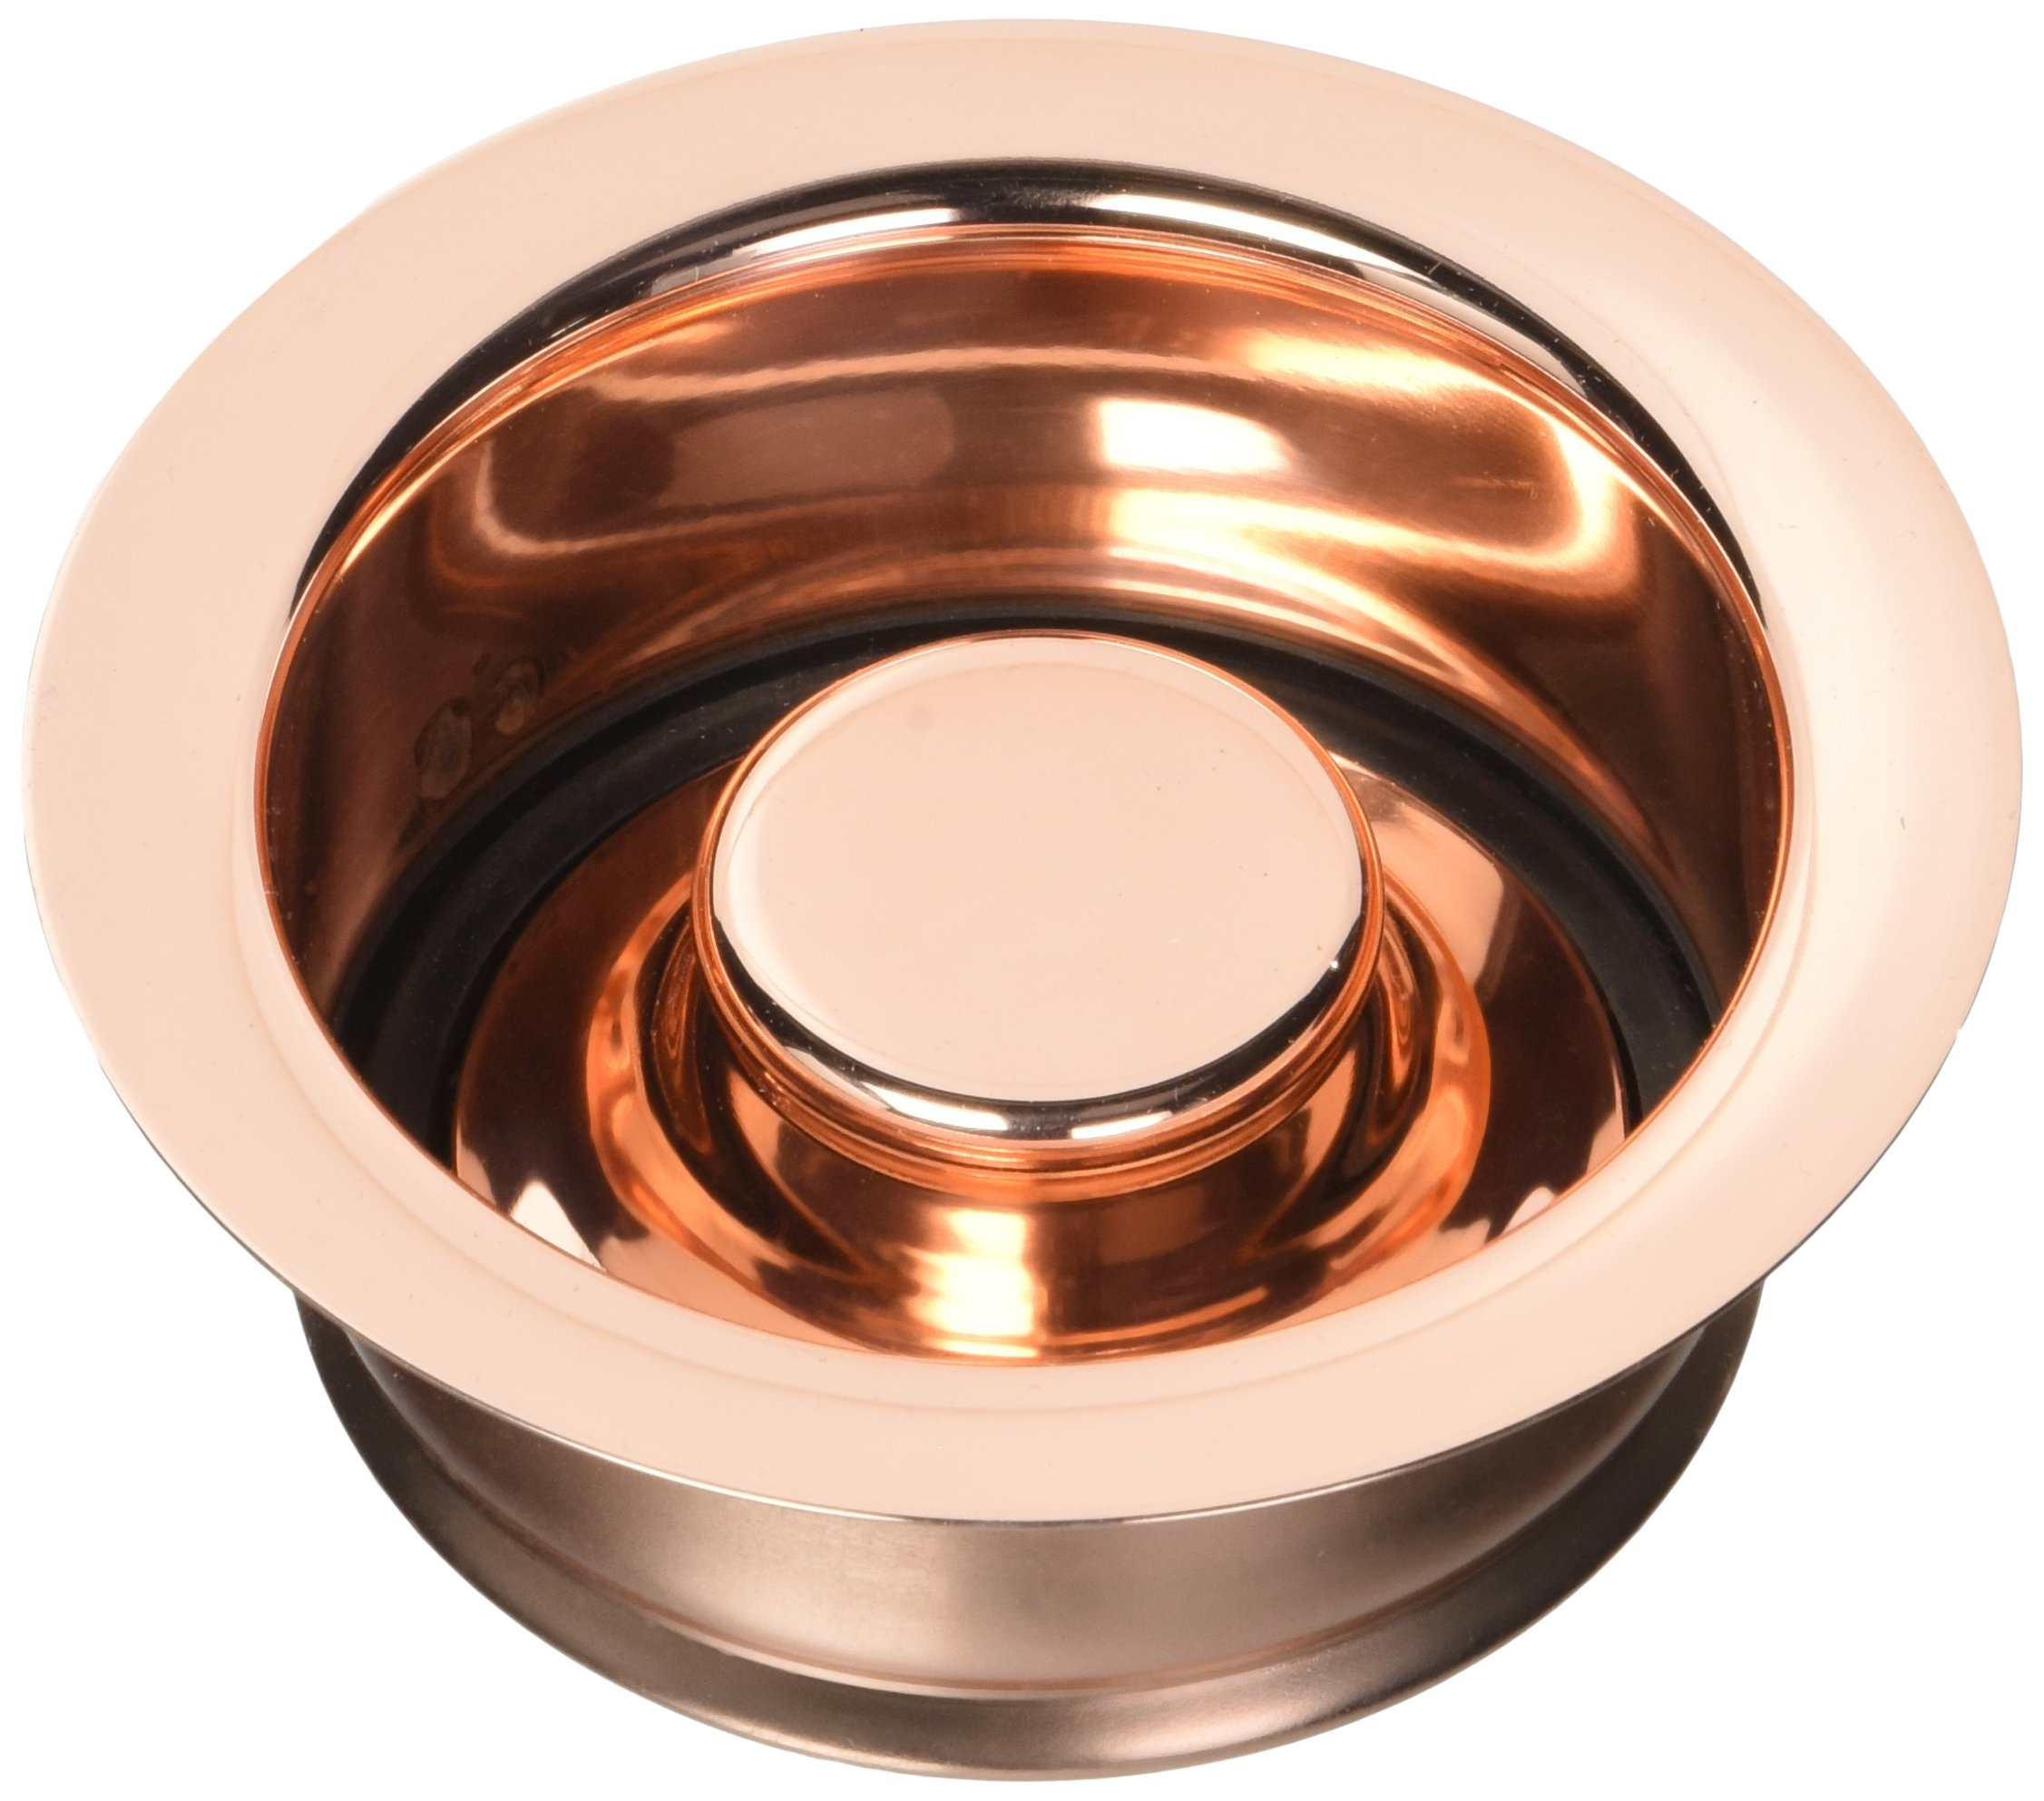 Jaclo 2815-PCU Garbage Disposal Flange with Stopper, Polished Copper by Jaclo